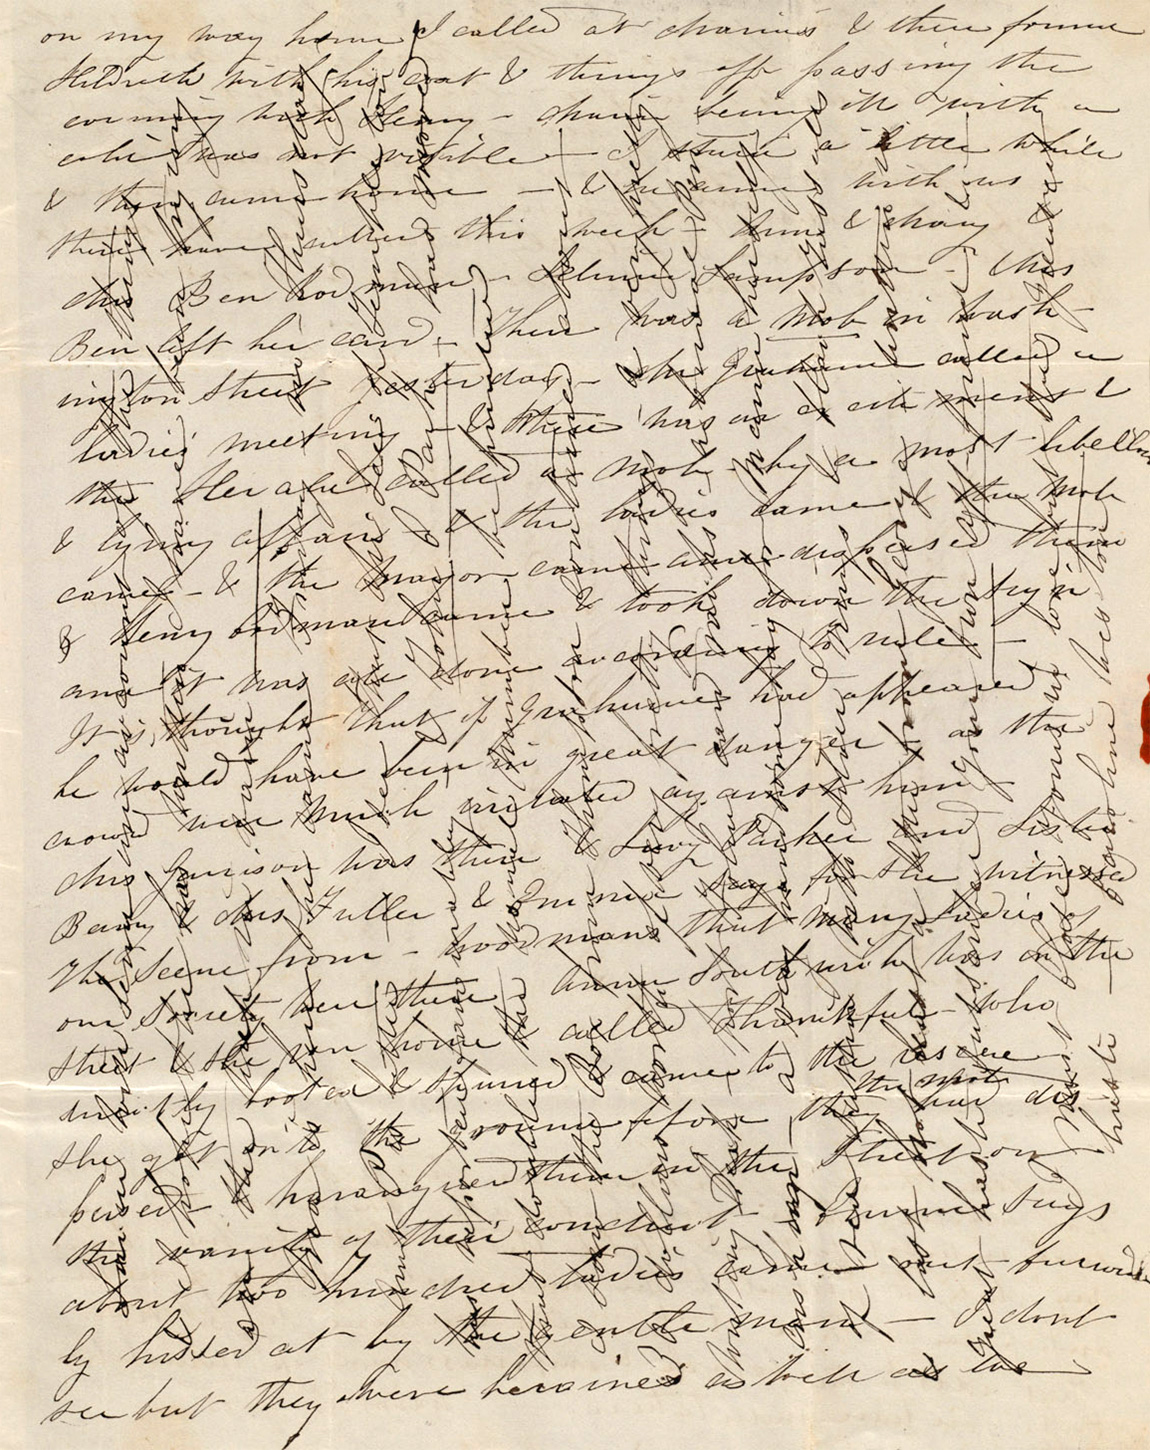 Photo of handwritten letter from 1837, with cursive writing extending both horizontally and vertically on the page.